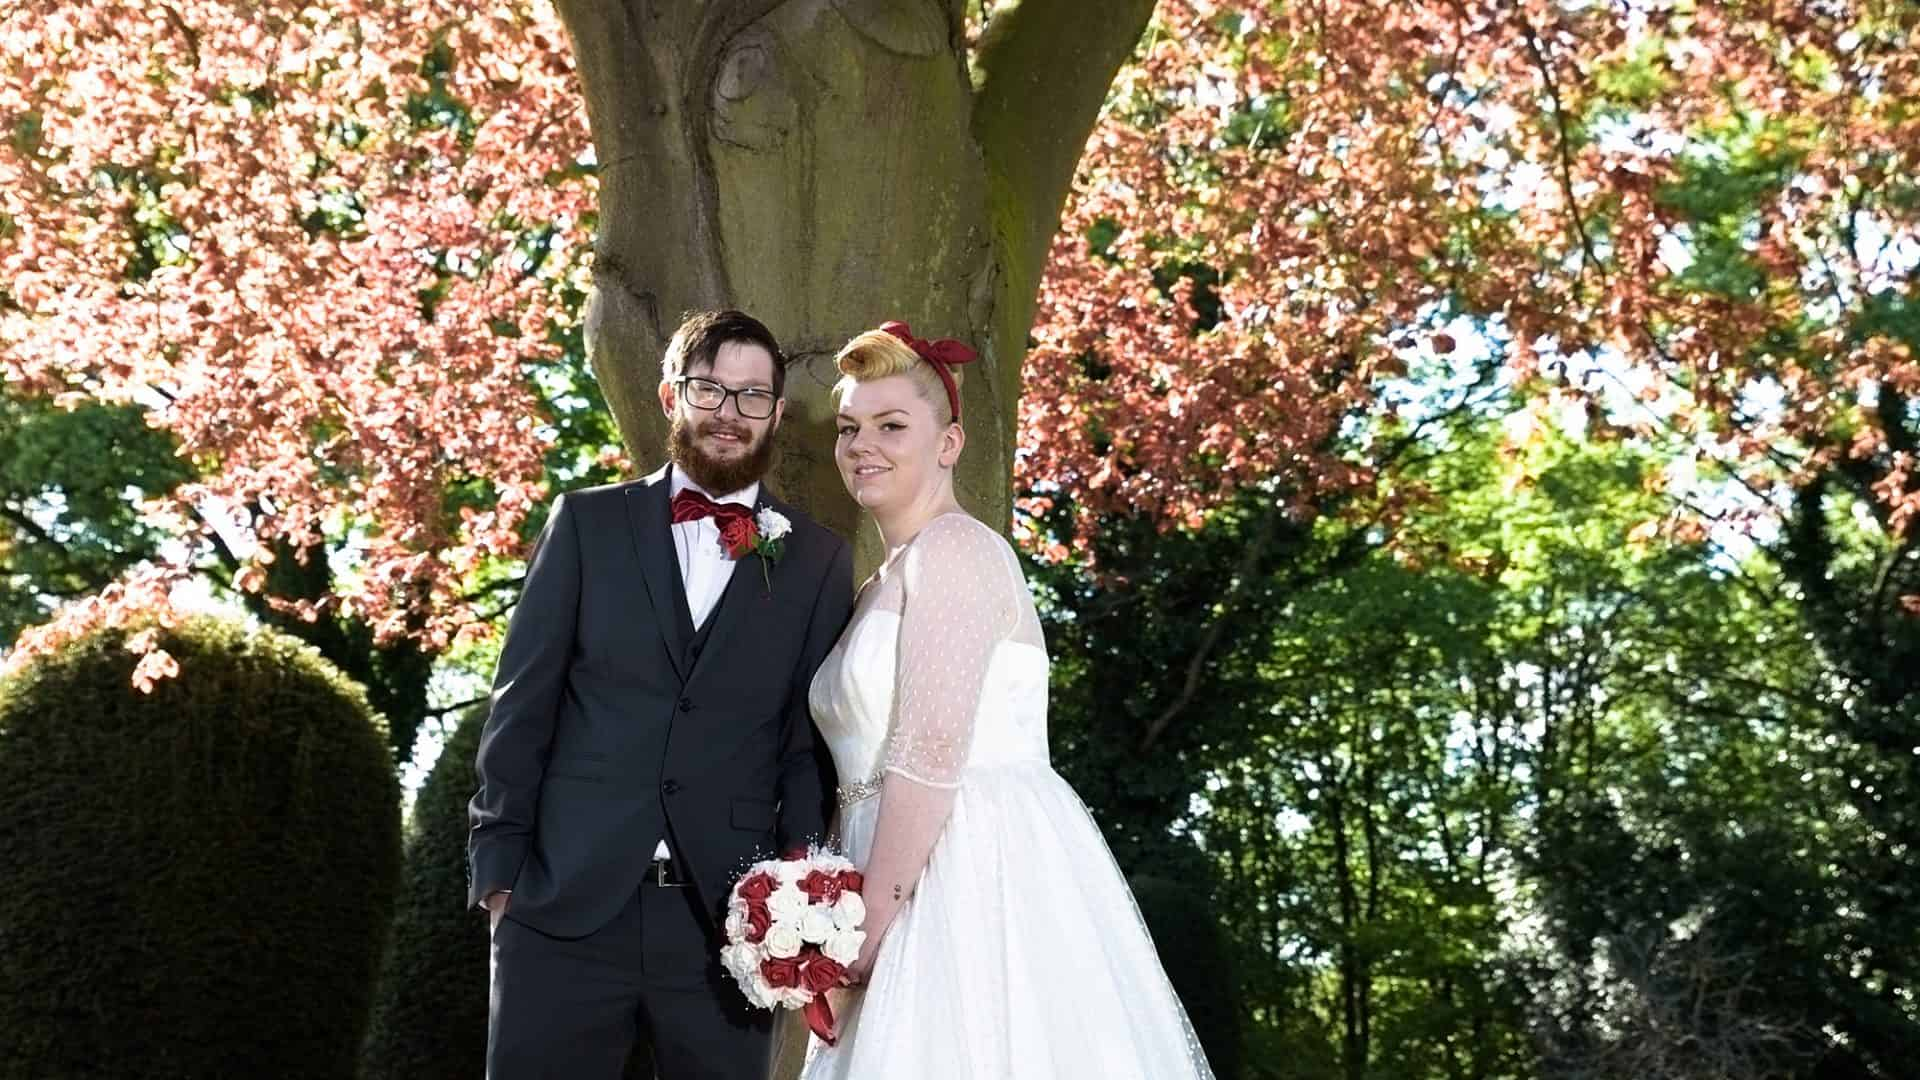 Bride and groom under the shade of a tree